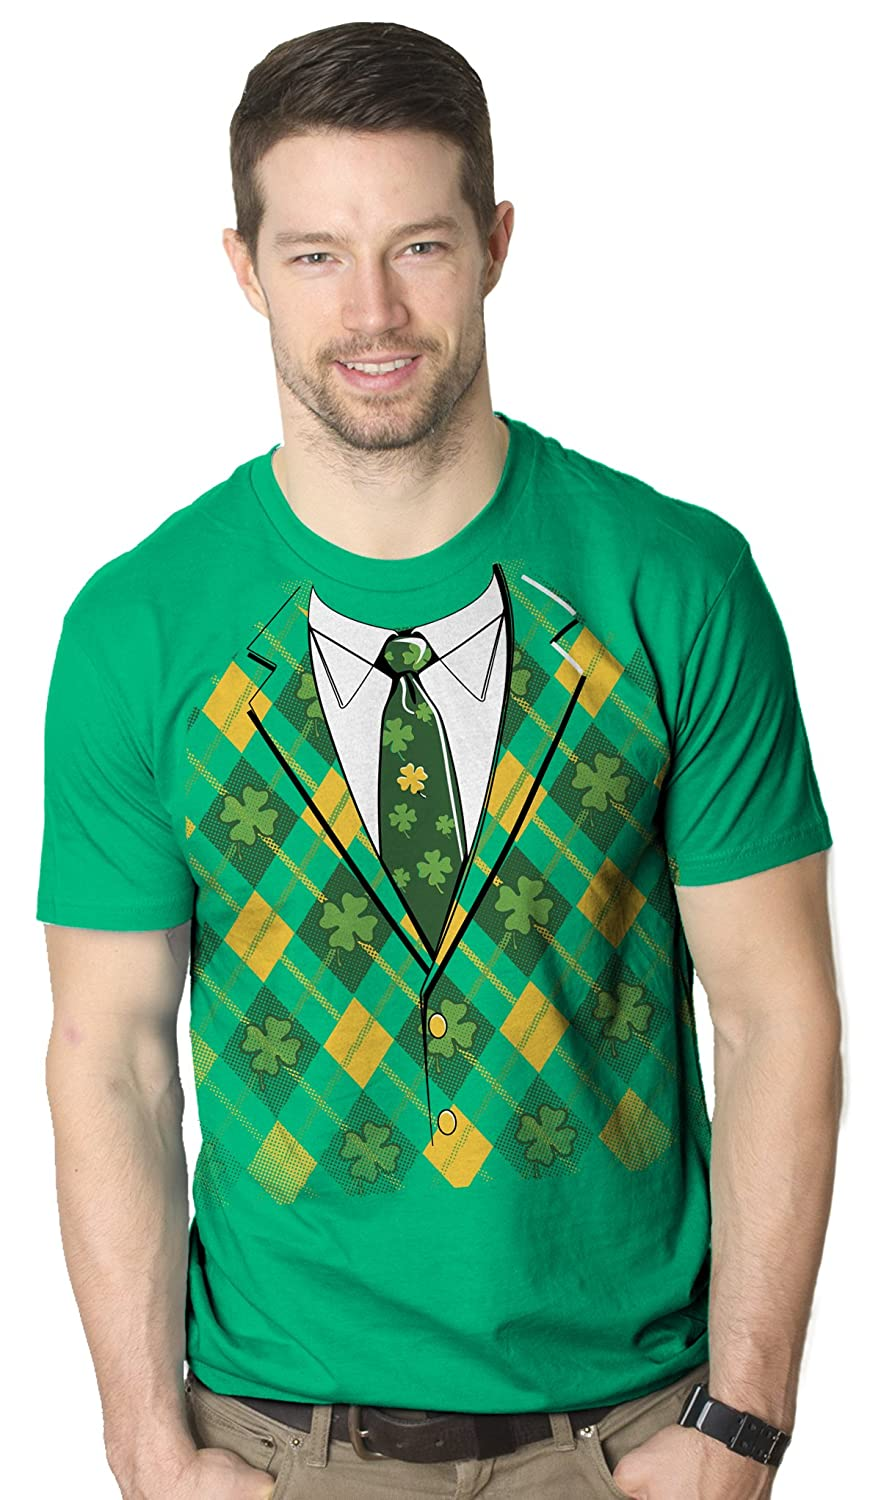 Amazoncom Leprechaun Tuxedo Funny ST Patricks Day Irish - Dad turns his 6 month old son into real life leprechaun for st patricks day